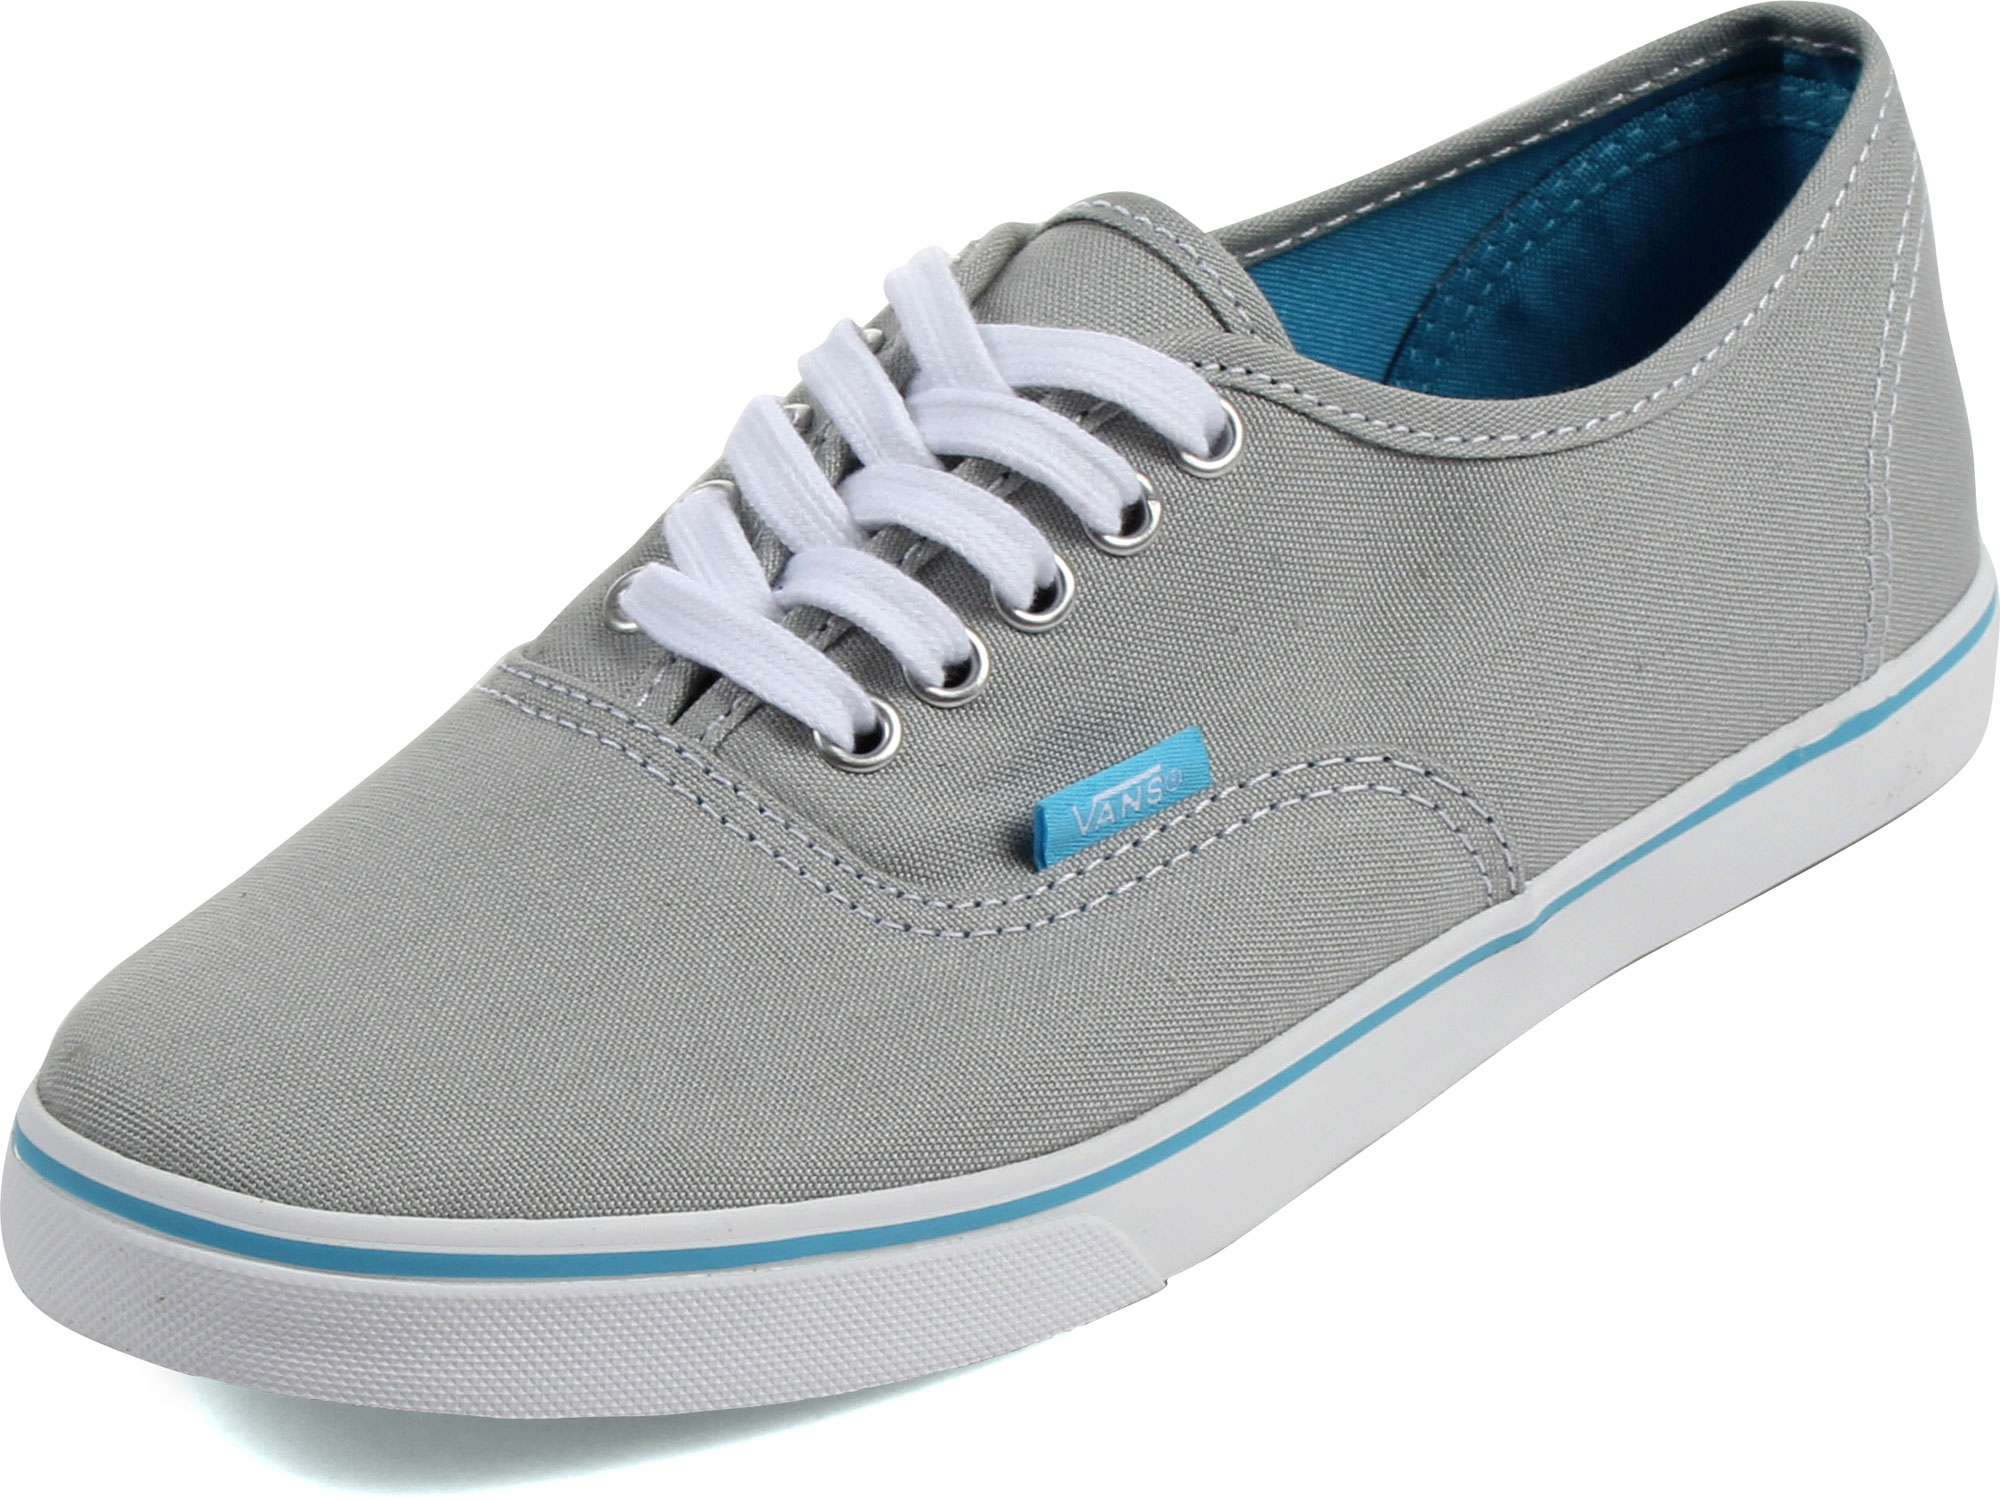 fa98a39a7ca Vans - Womens Authentic Lo Pro Shoes